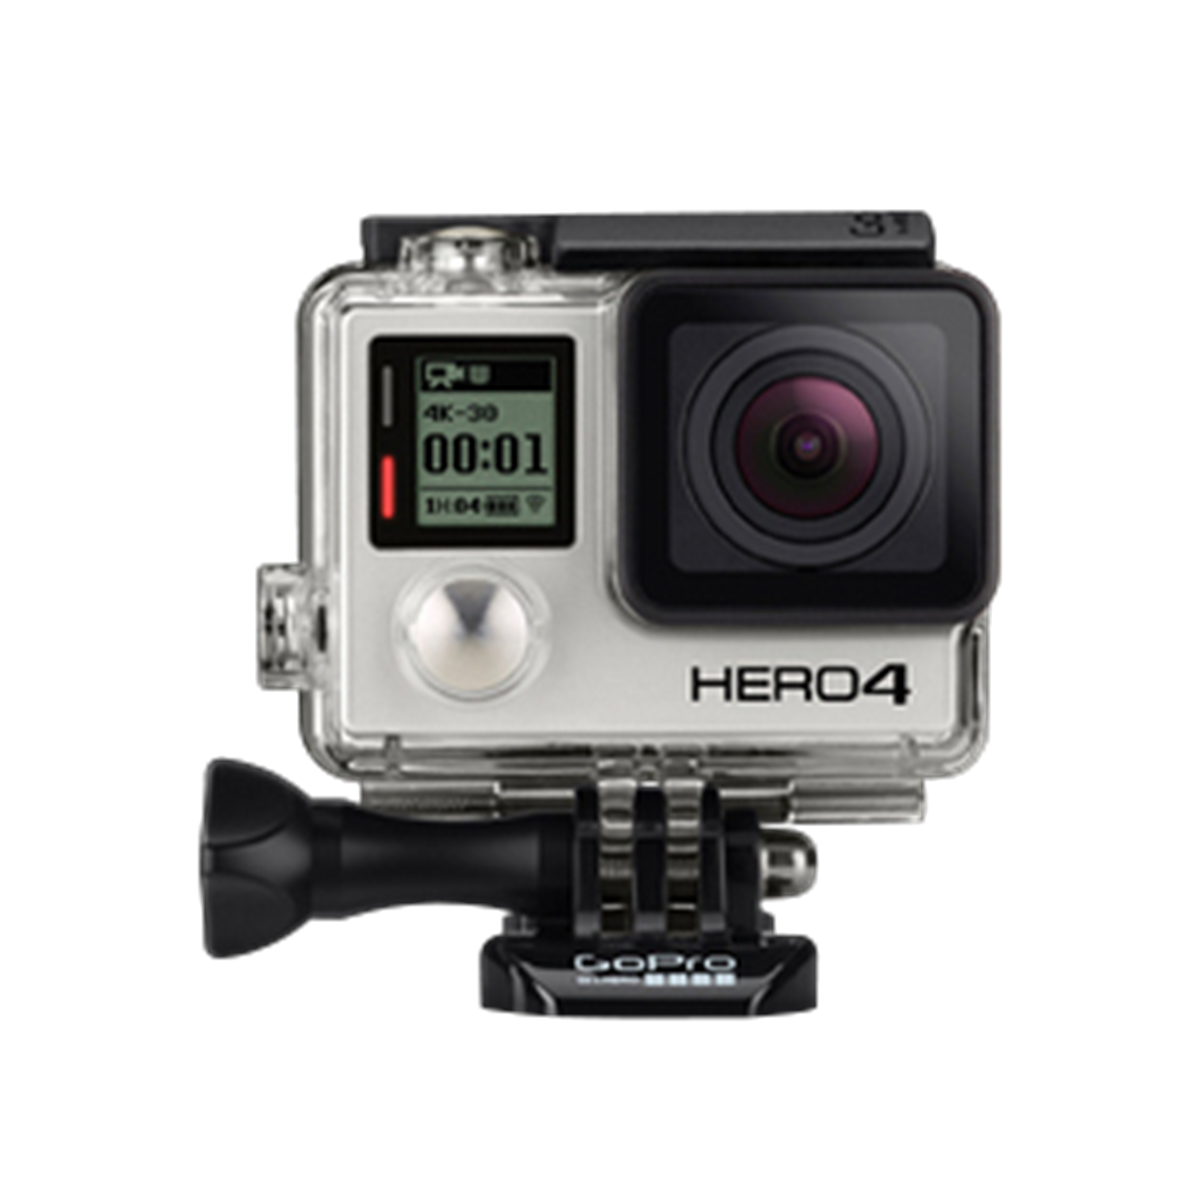 GoPro announces Hero4 lineup: Digital Photography Review